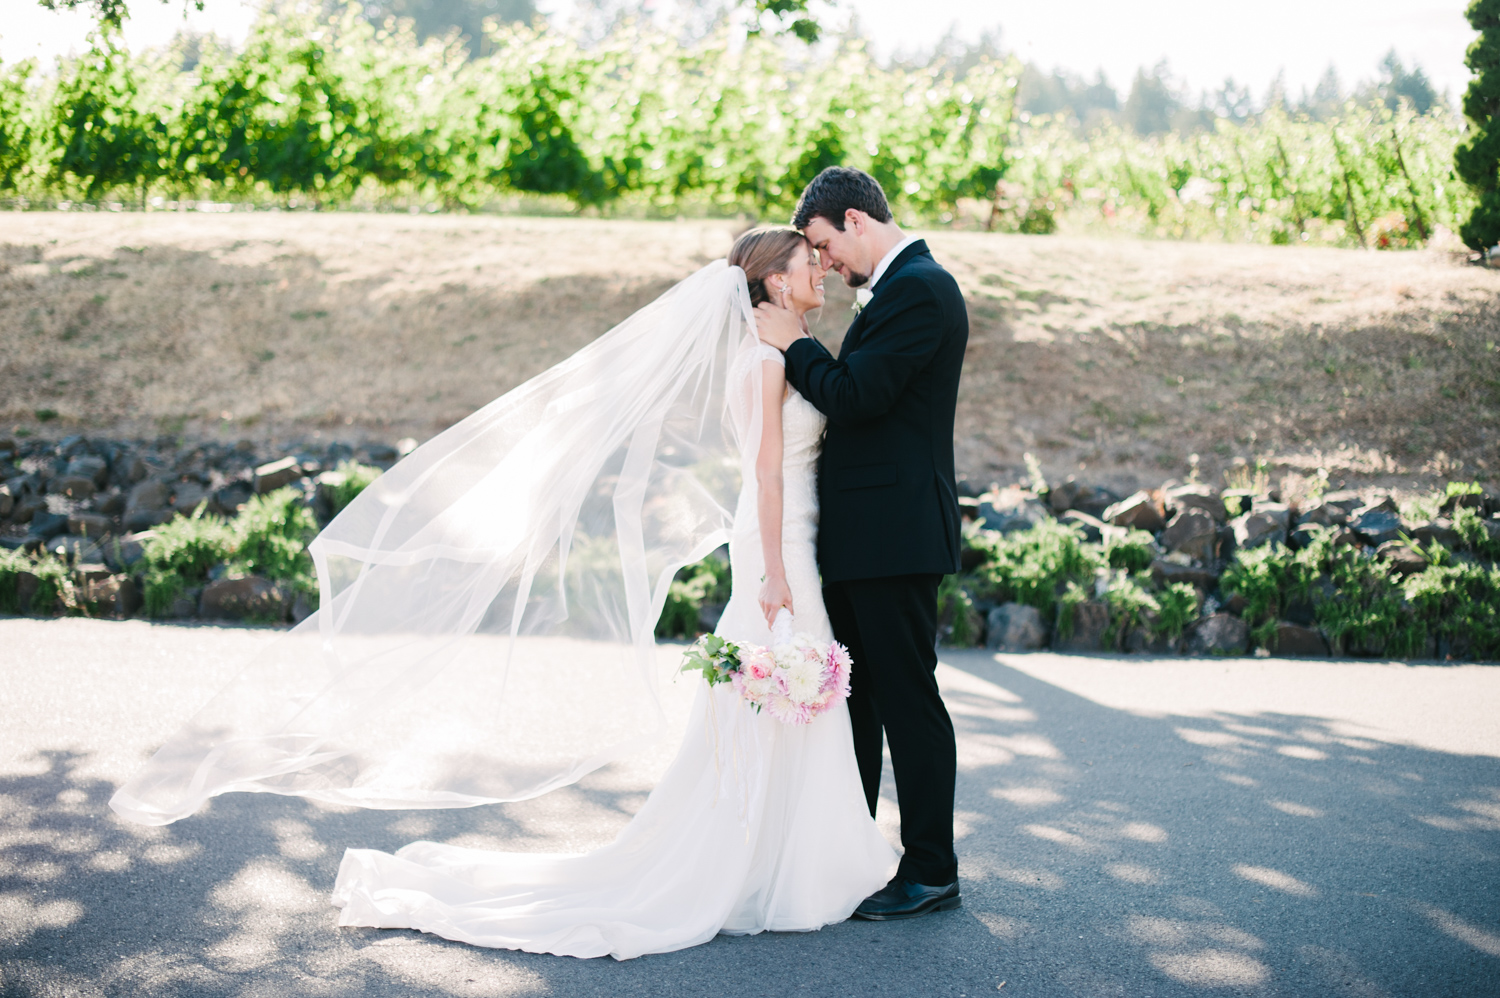 23-zenith-vineyard-wedding-portland-oregon-christa-taylor-photography.jpg